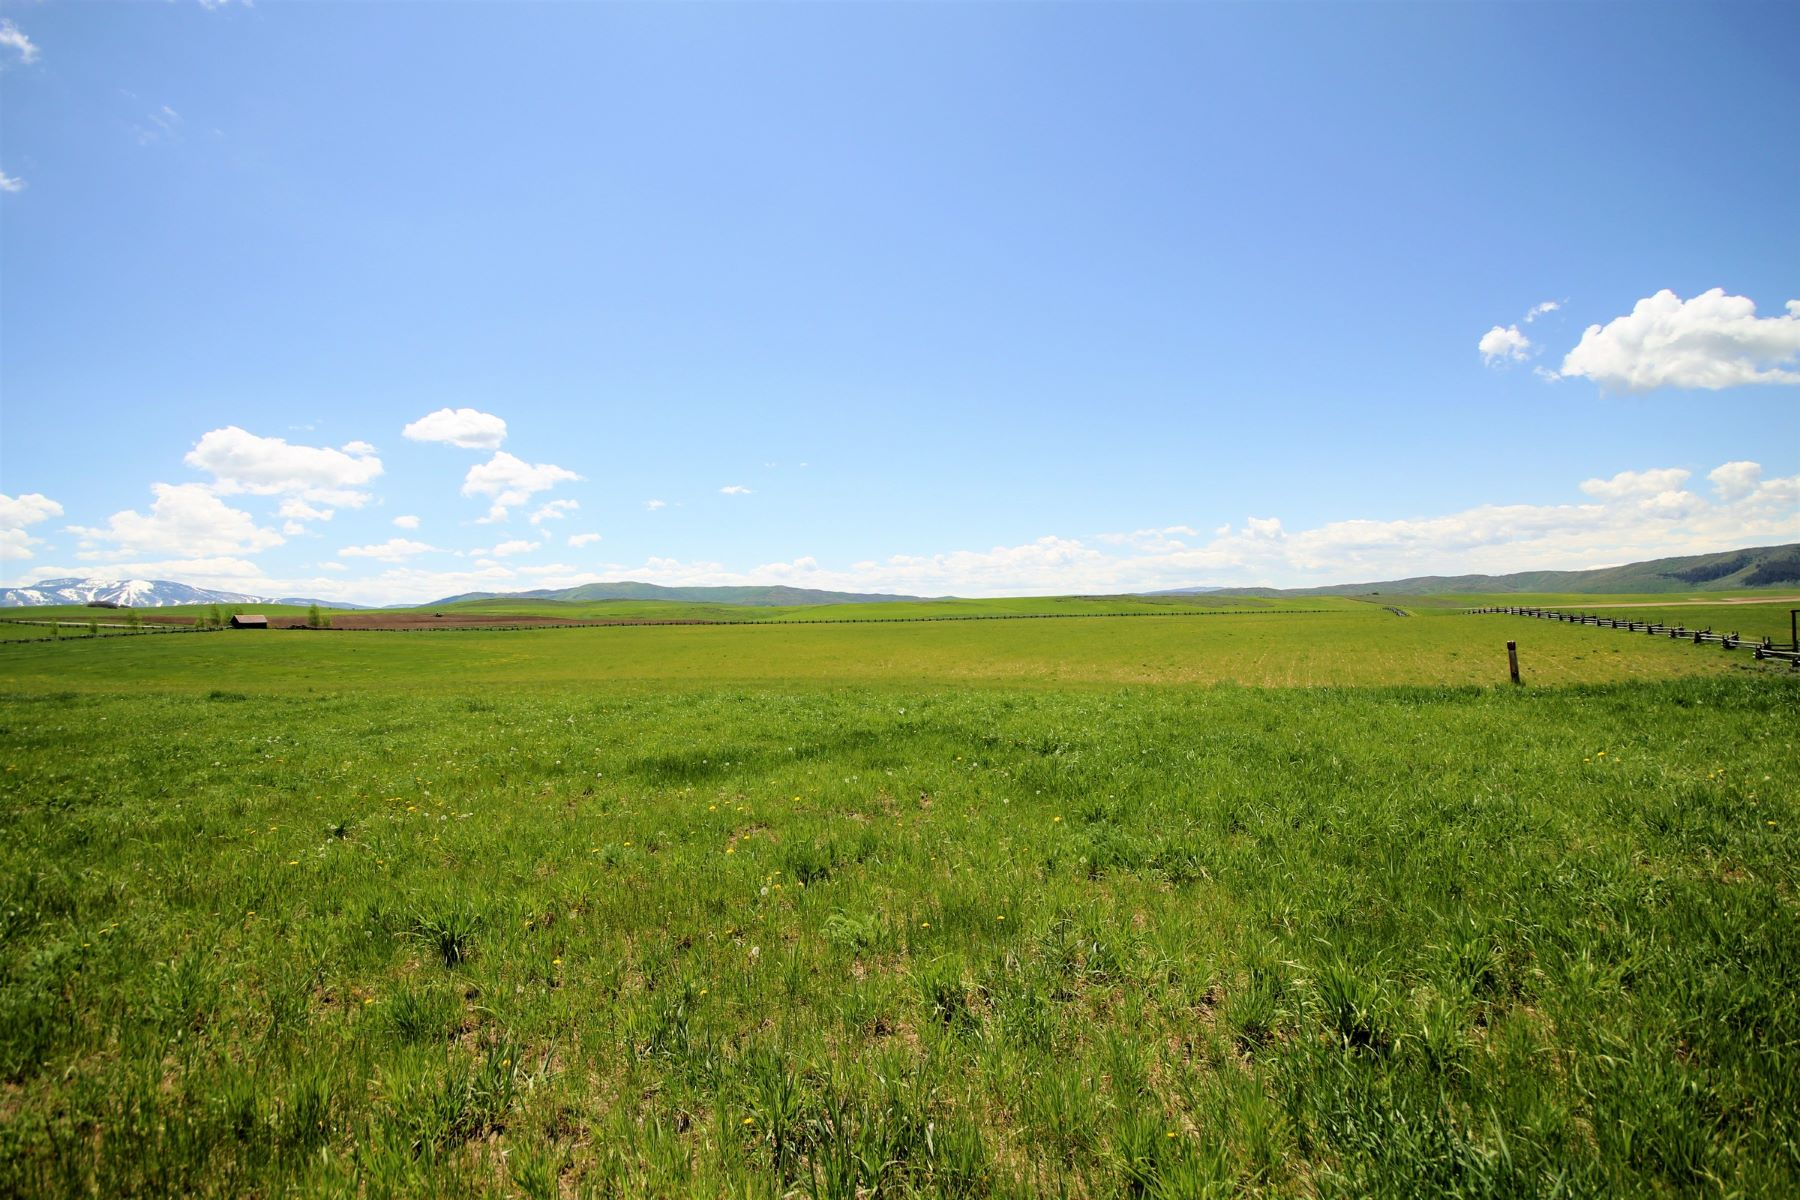 Additional photo for property listing at Legacy Marabou Ranch Homestead 25825 Shootin Star Ln Steamboat Springs, Colorado 80487 United States